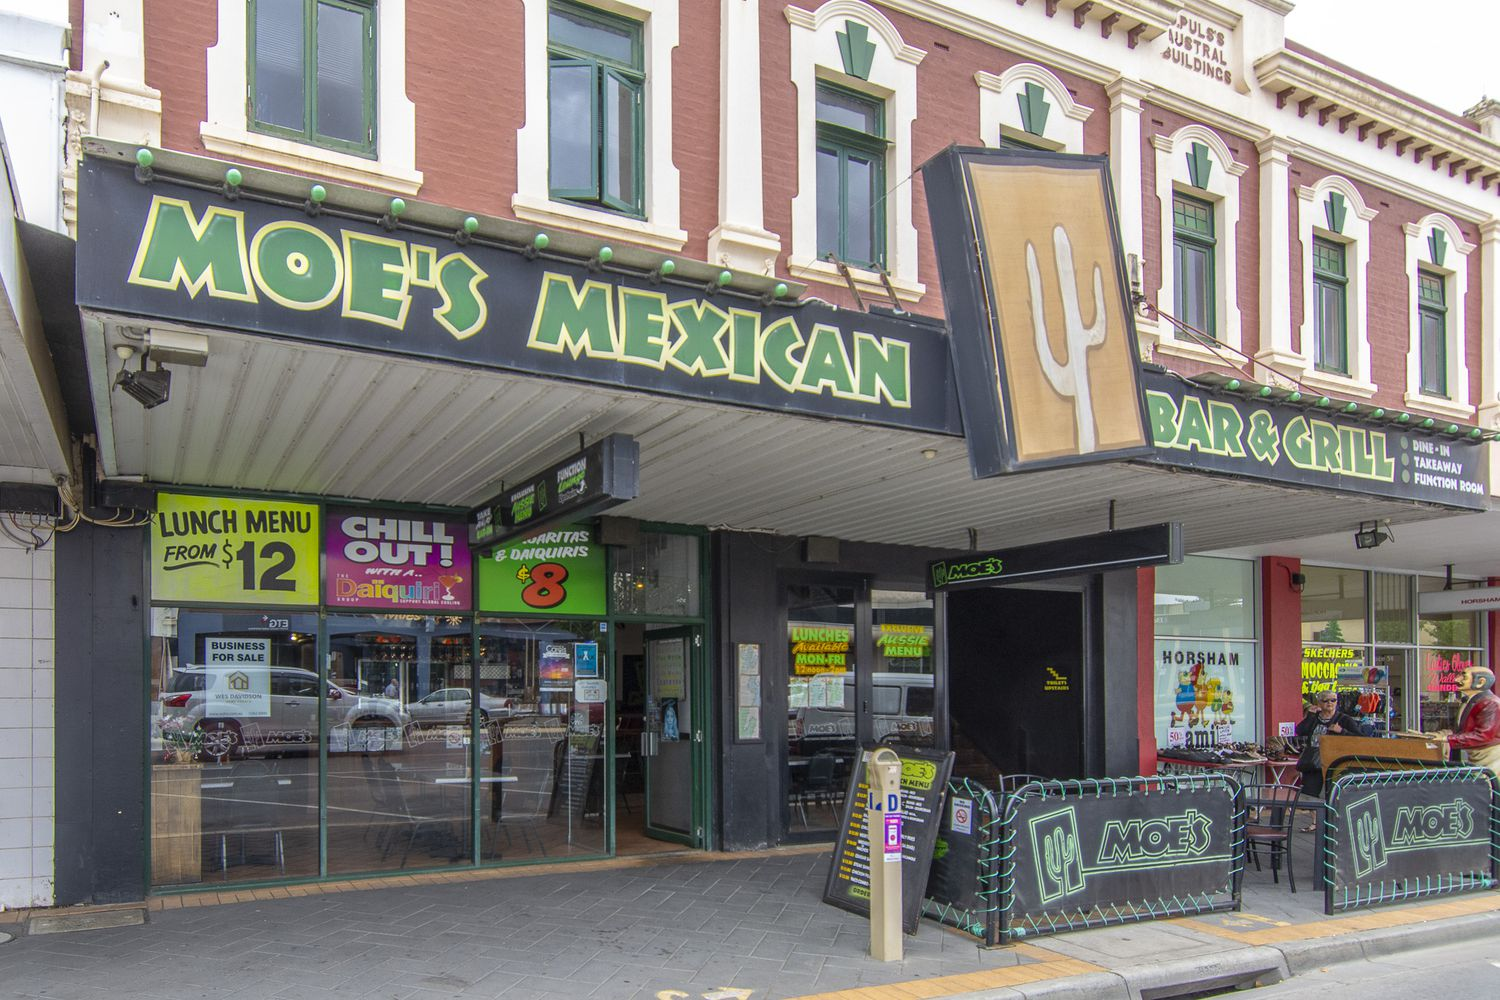 Moe's Mexican Bar & Grill Restaurant